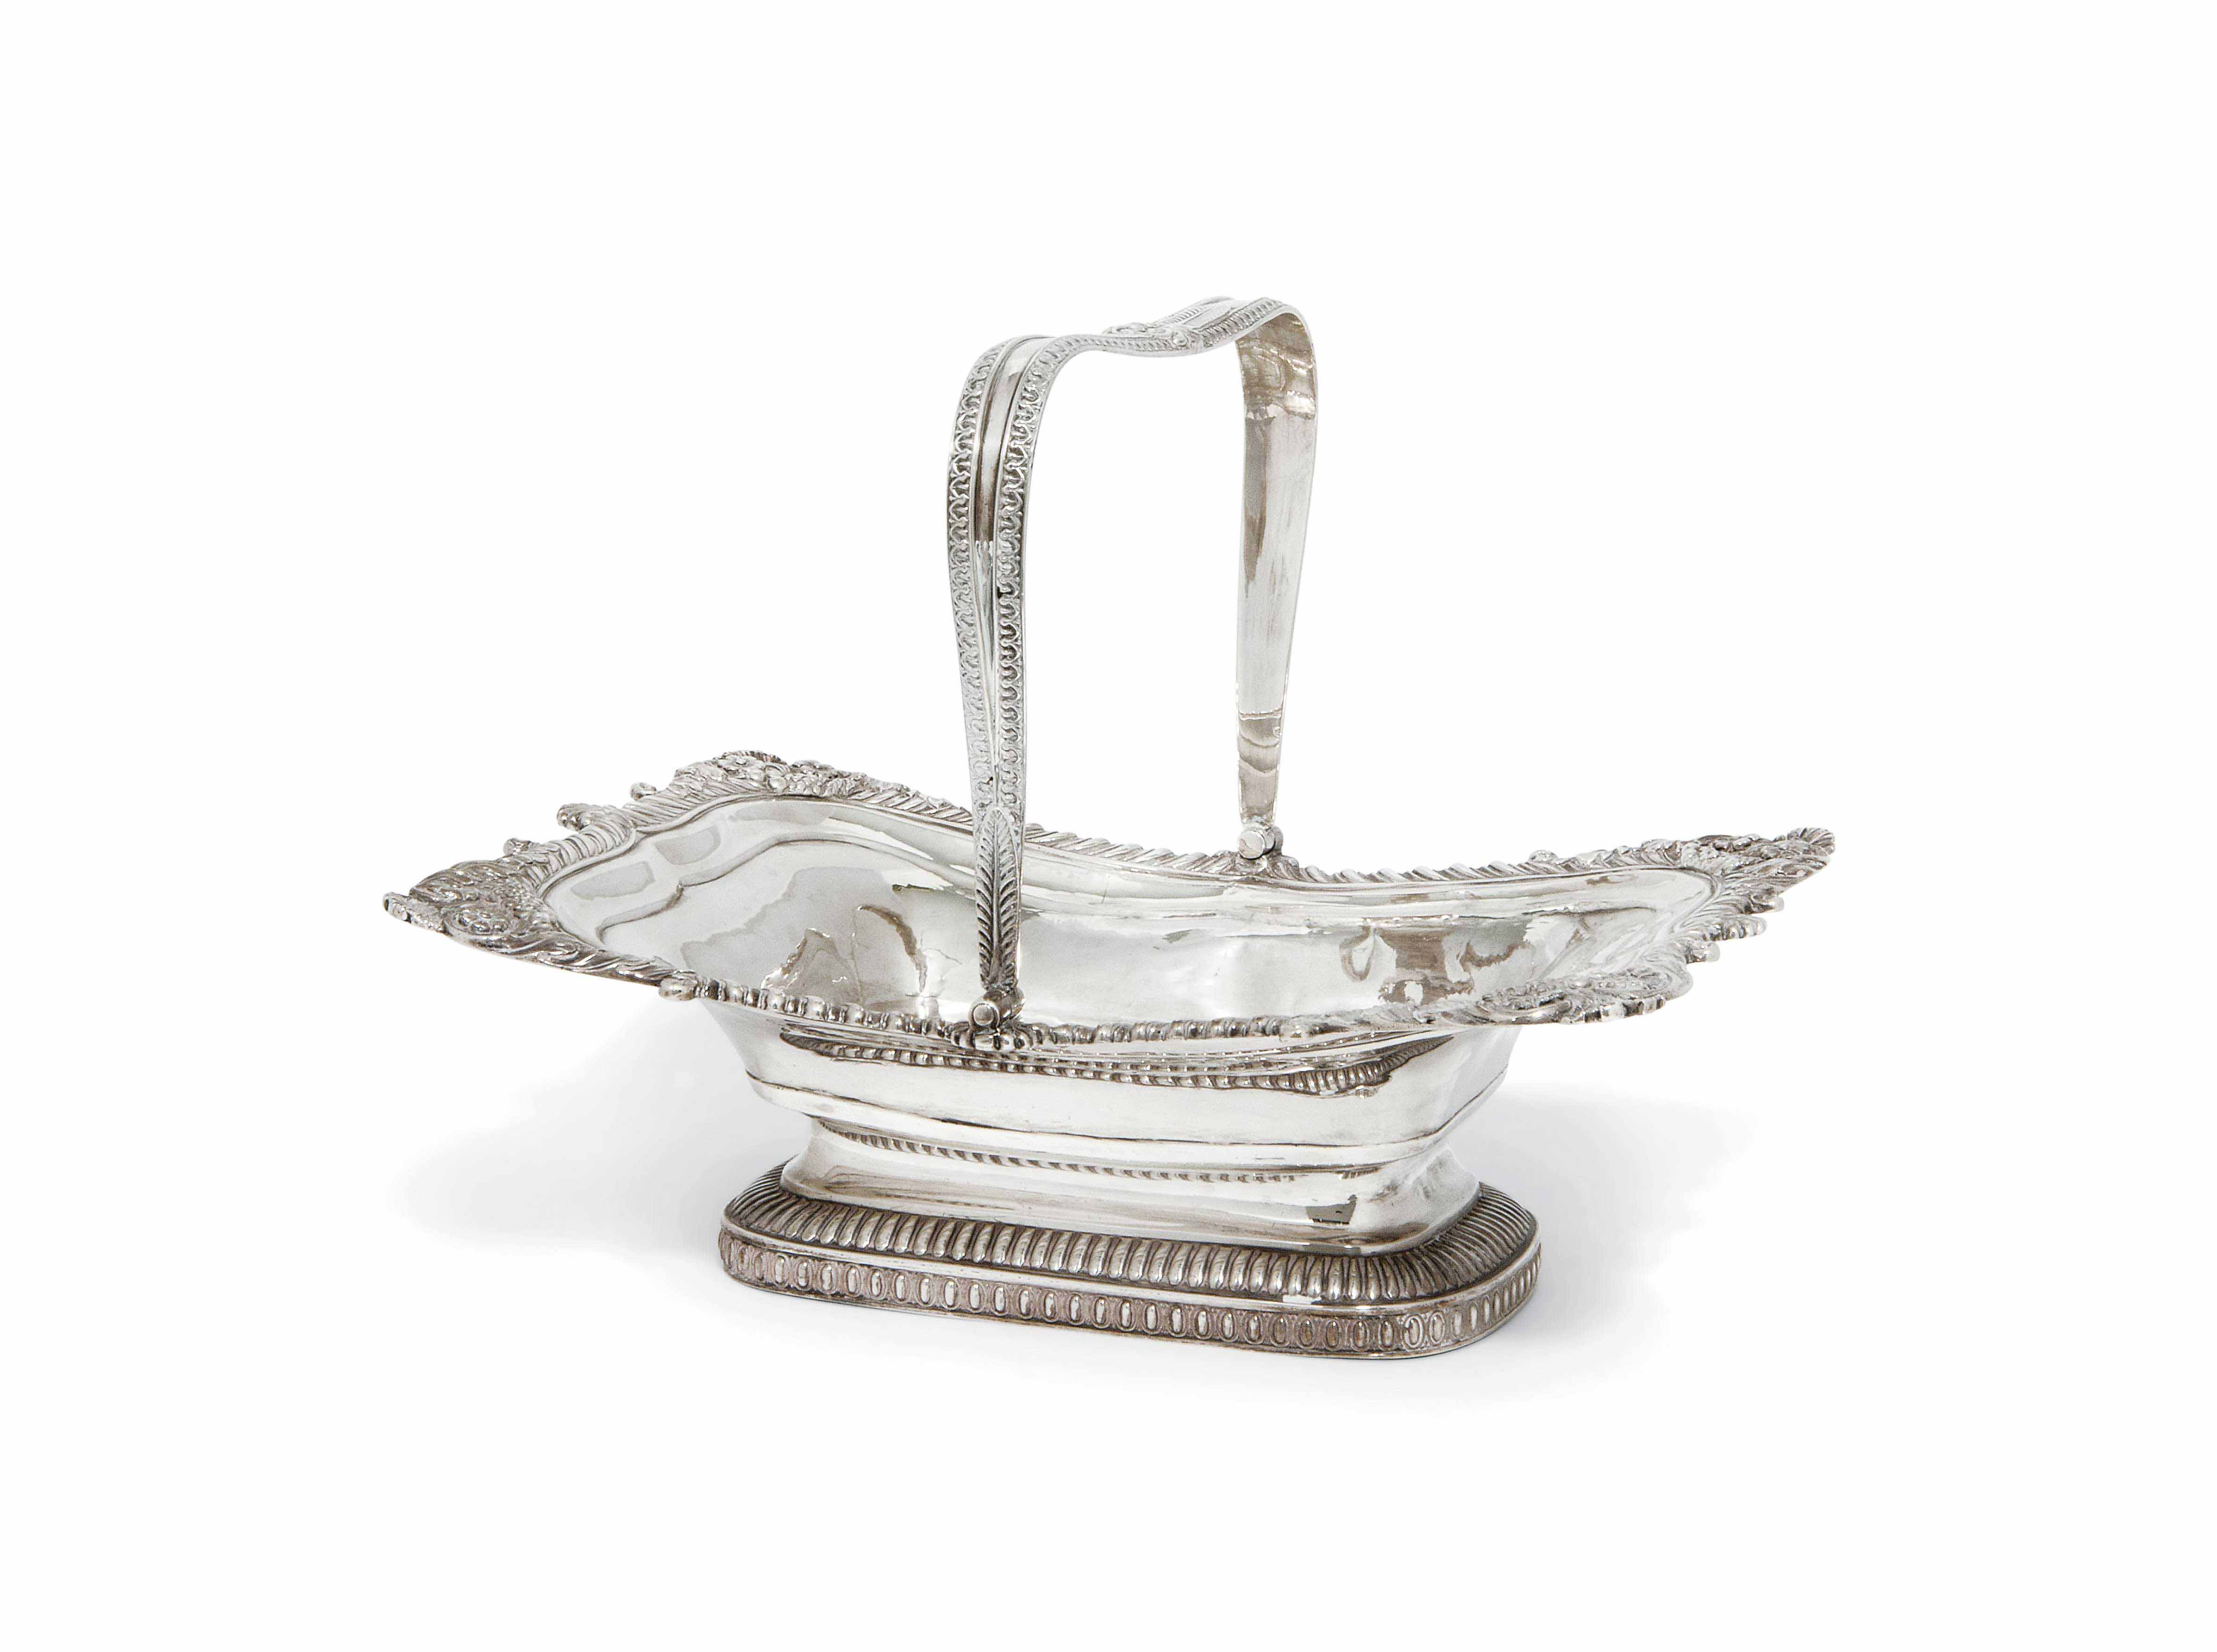 A GEORGE III SILVER SWING-HANDLED CAKE BASKET